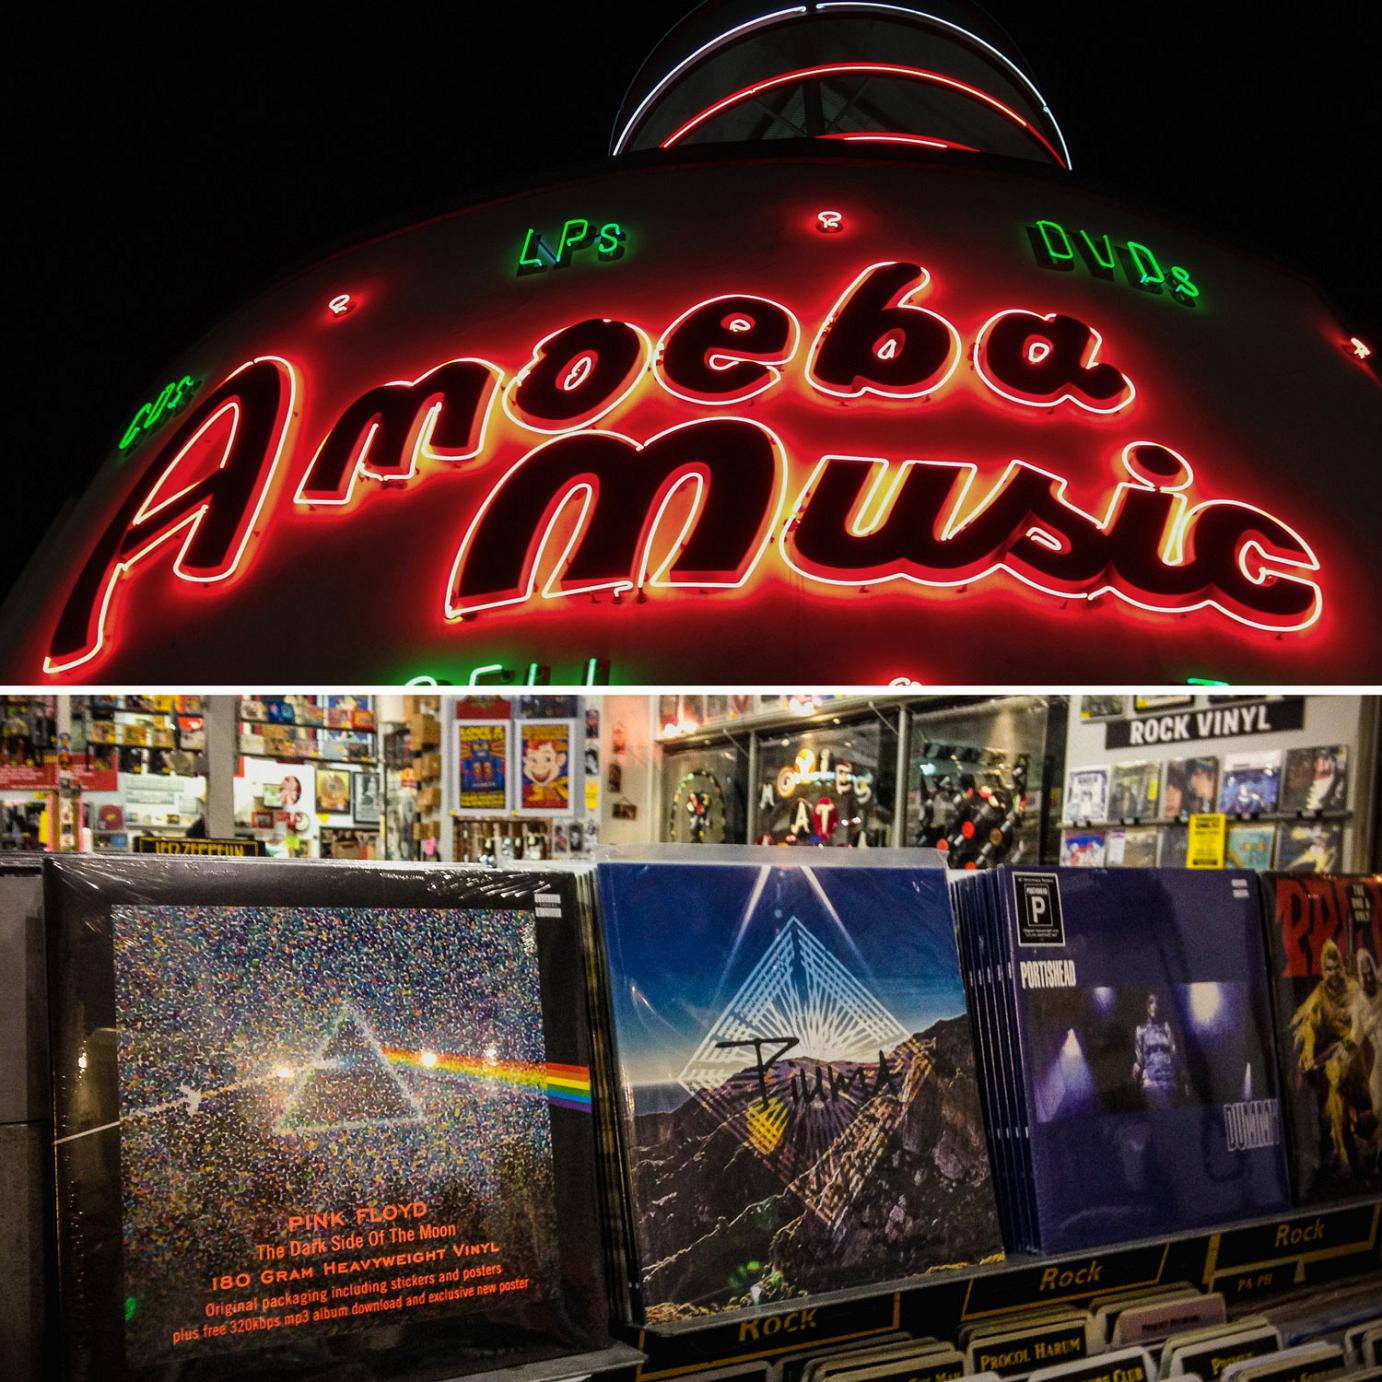 Piuma at Amoeba Music